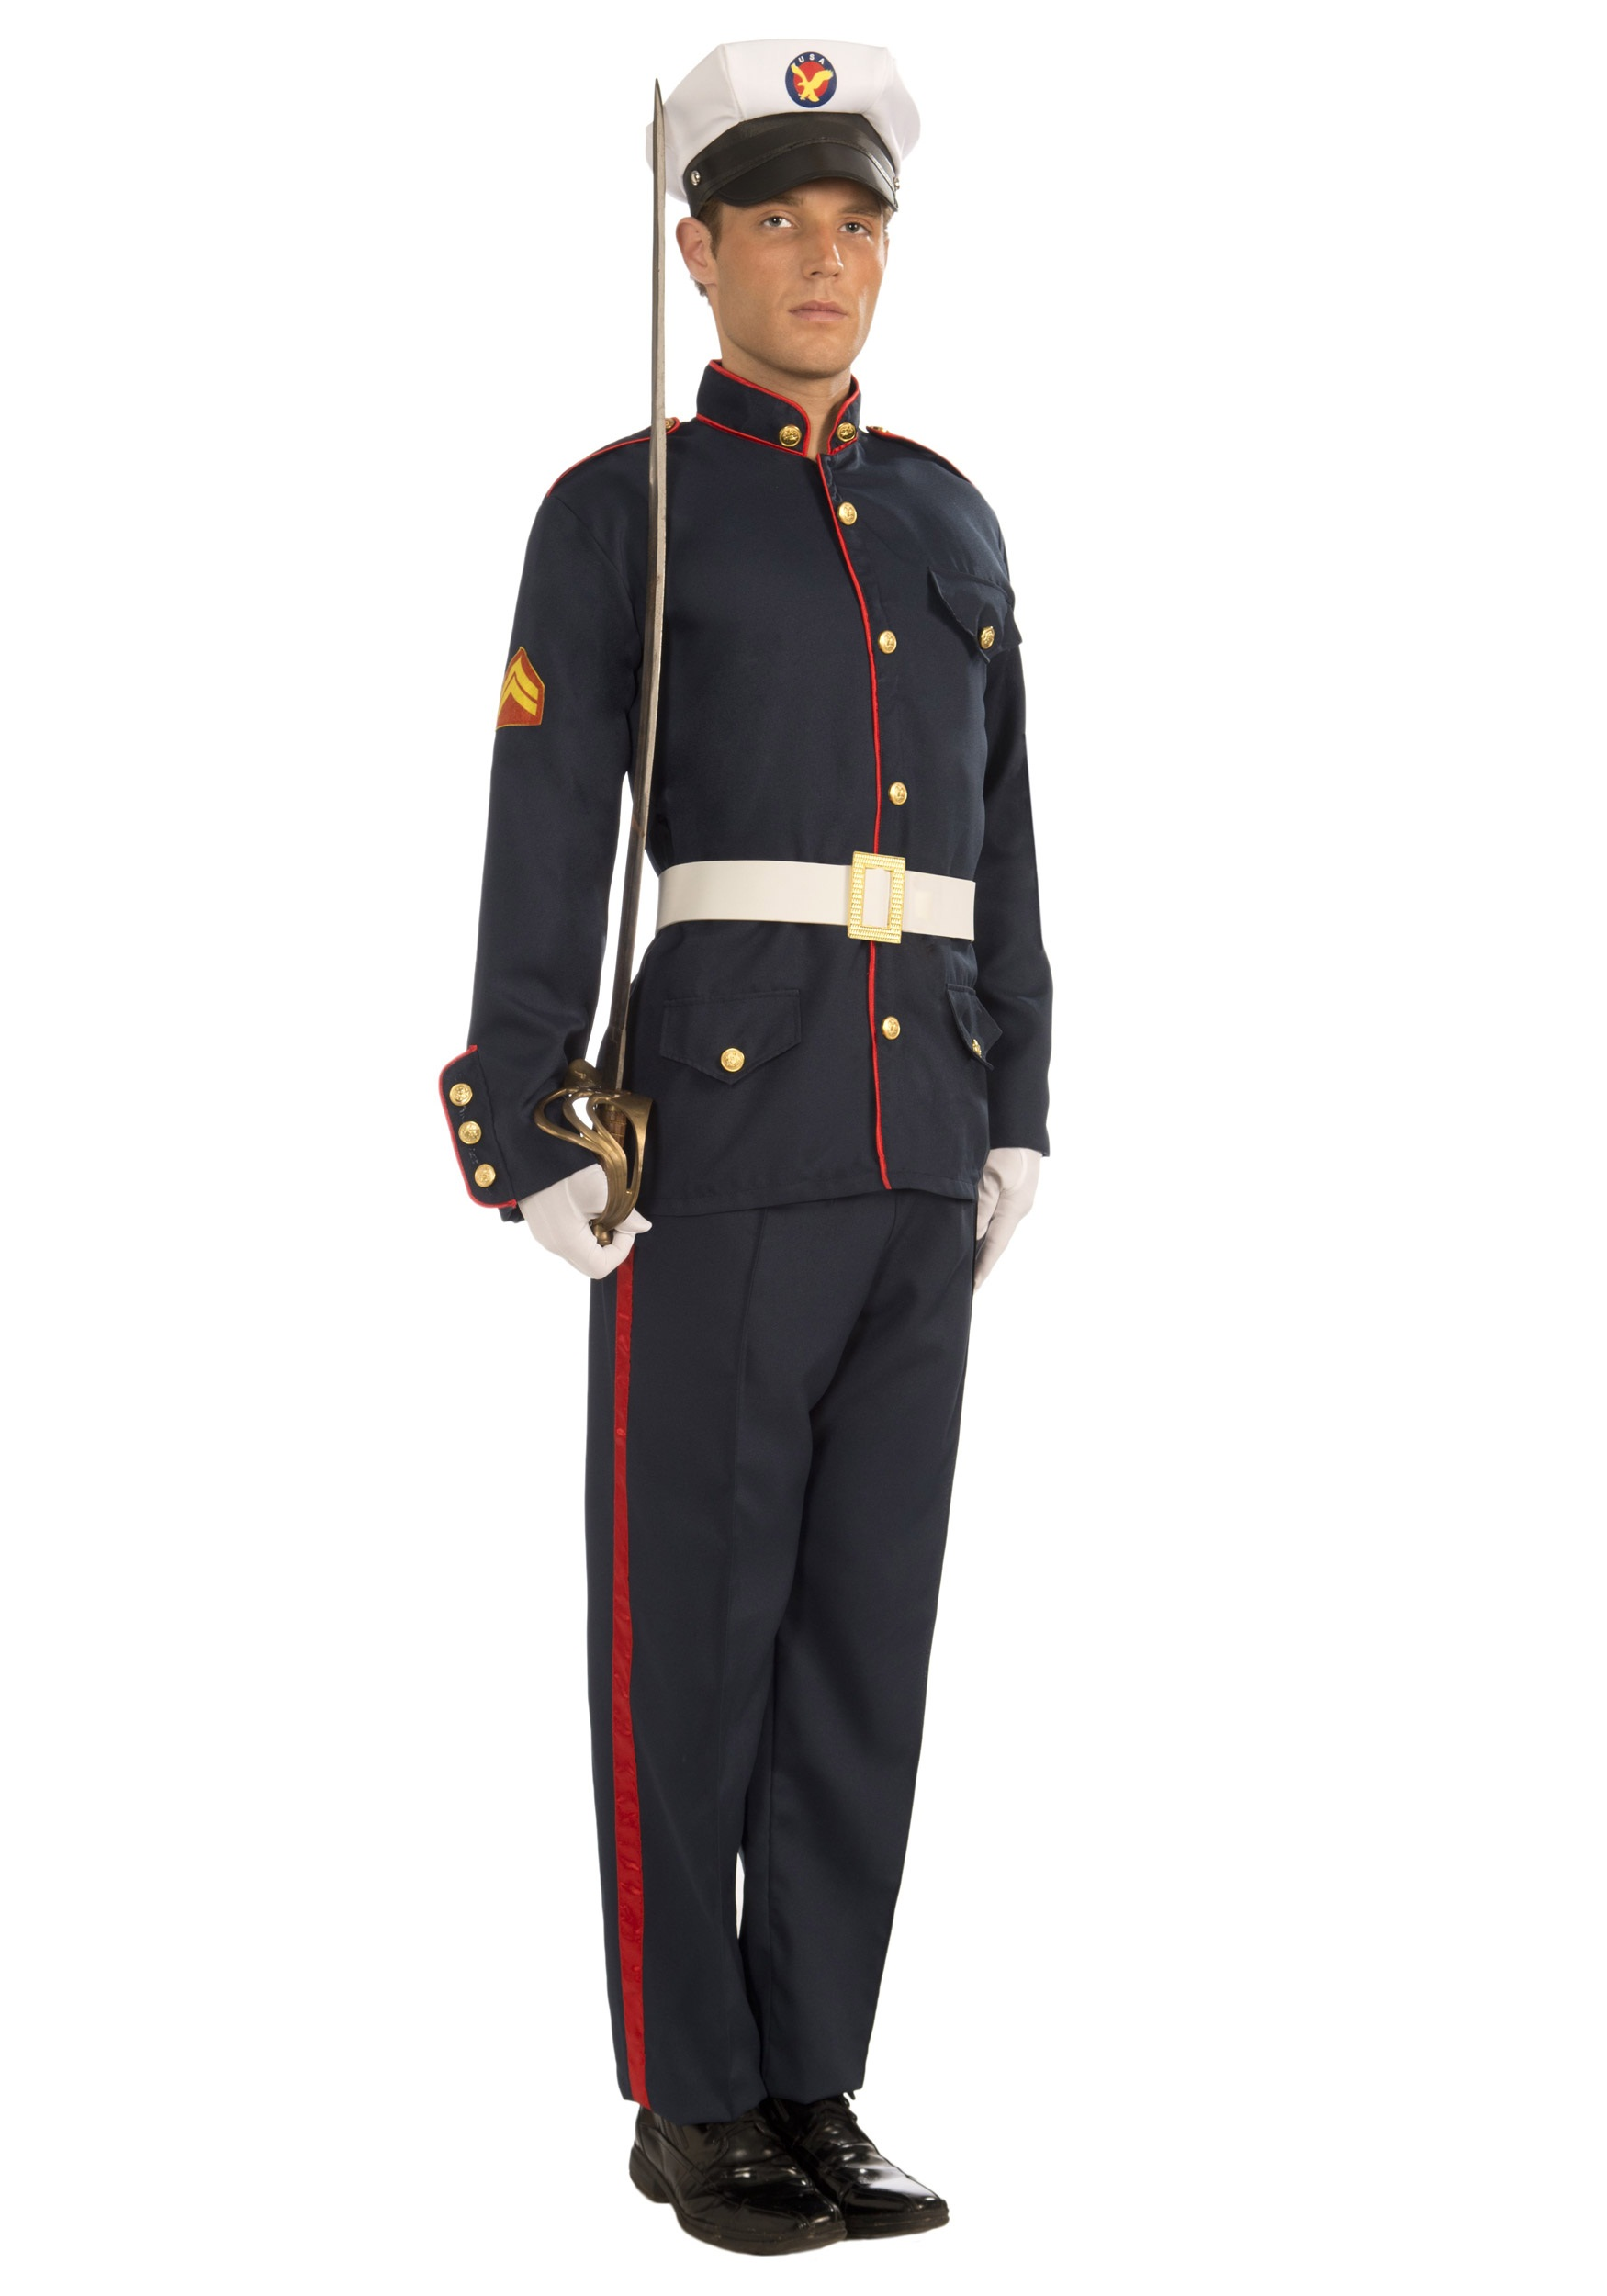 sc 1 st  Halloween Costumes : marine costume for men  - Germanpascual.Com